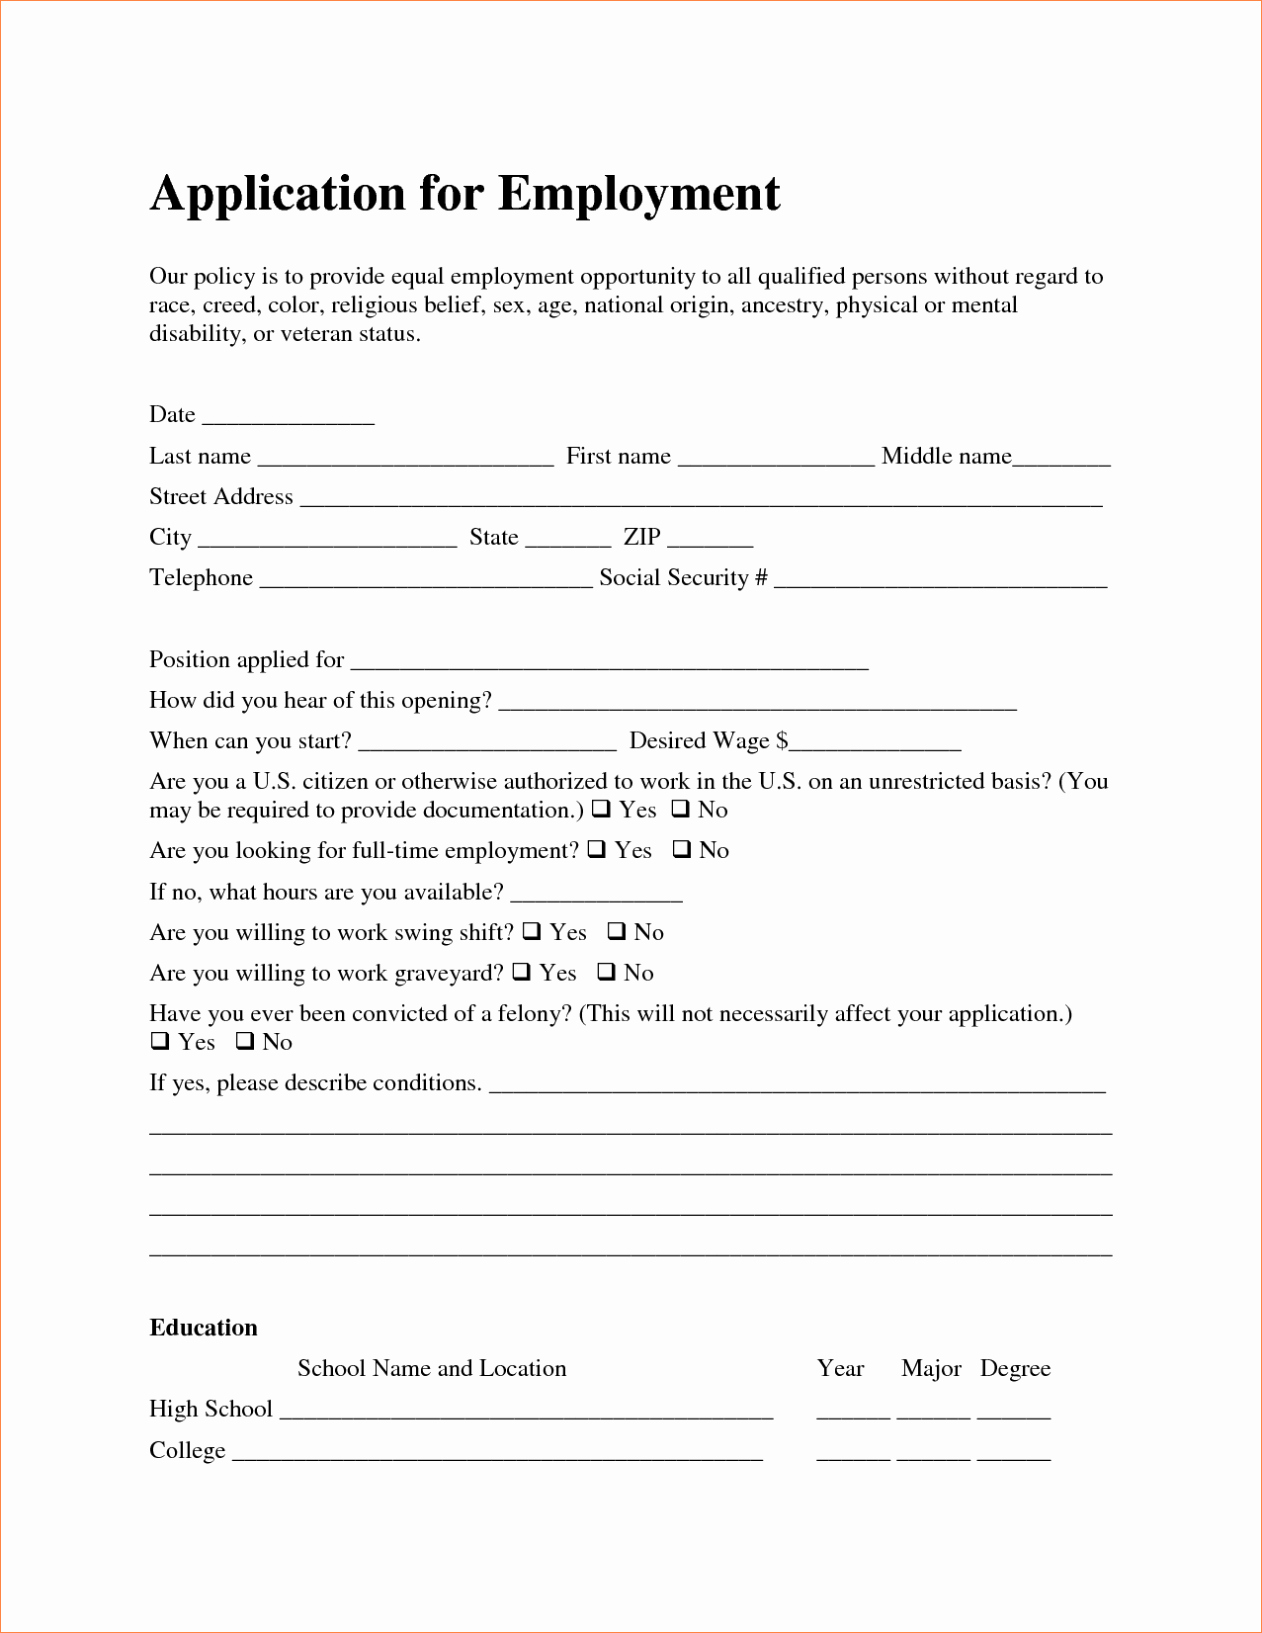 Simple Job Application Template Free Luxury Free Employment Job Application form Template Sample